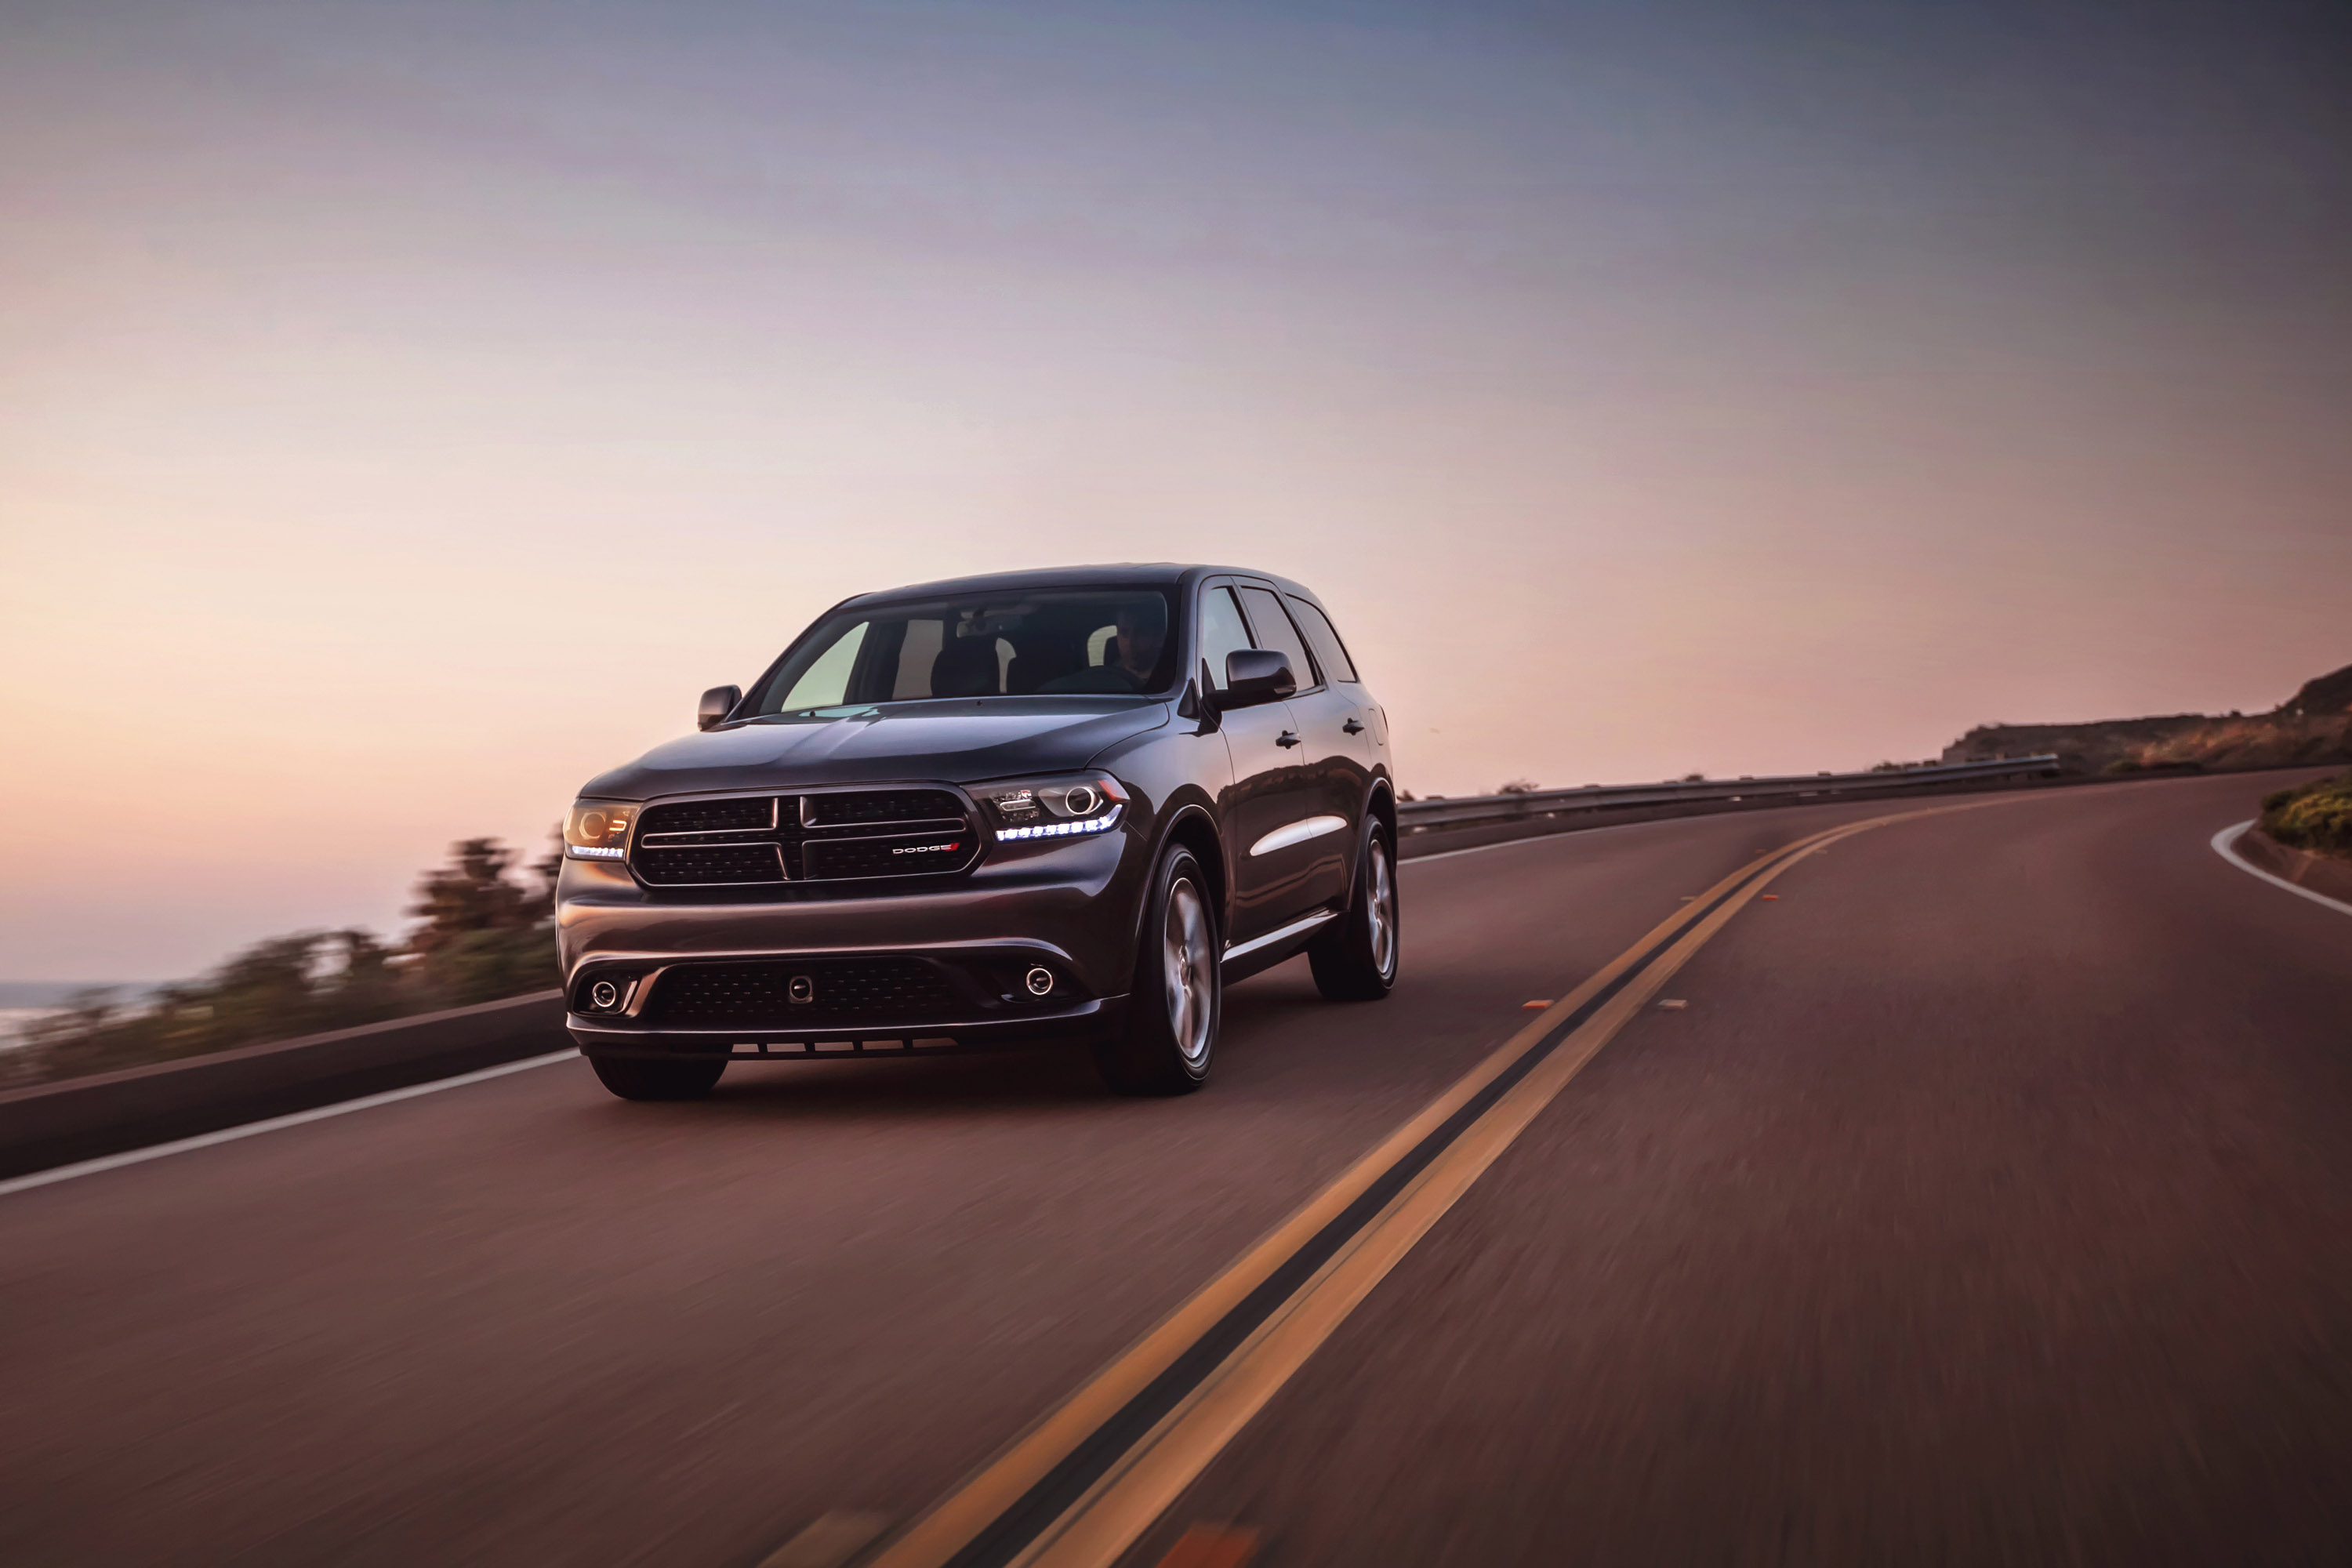 dodge durango wallpaper - photo #9